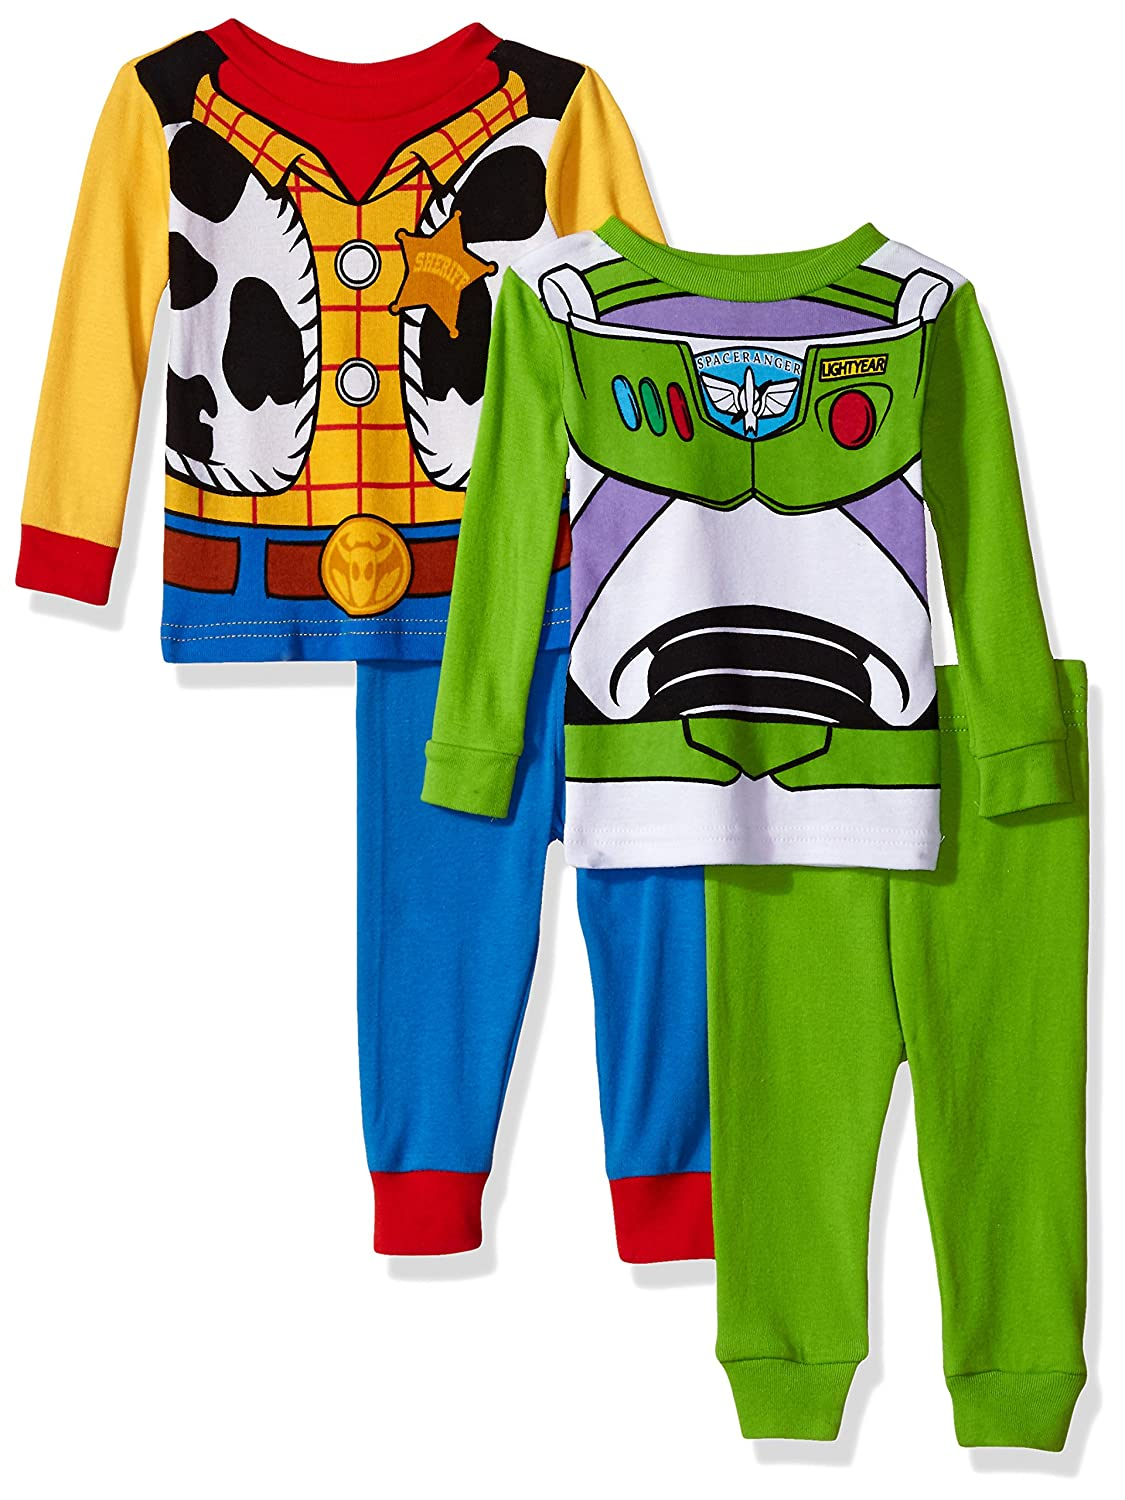 Disney Toy Story Boys' 4-Piece Cotton Pajama Set 21TS023BLSAZ